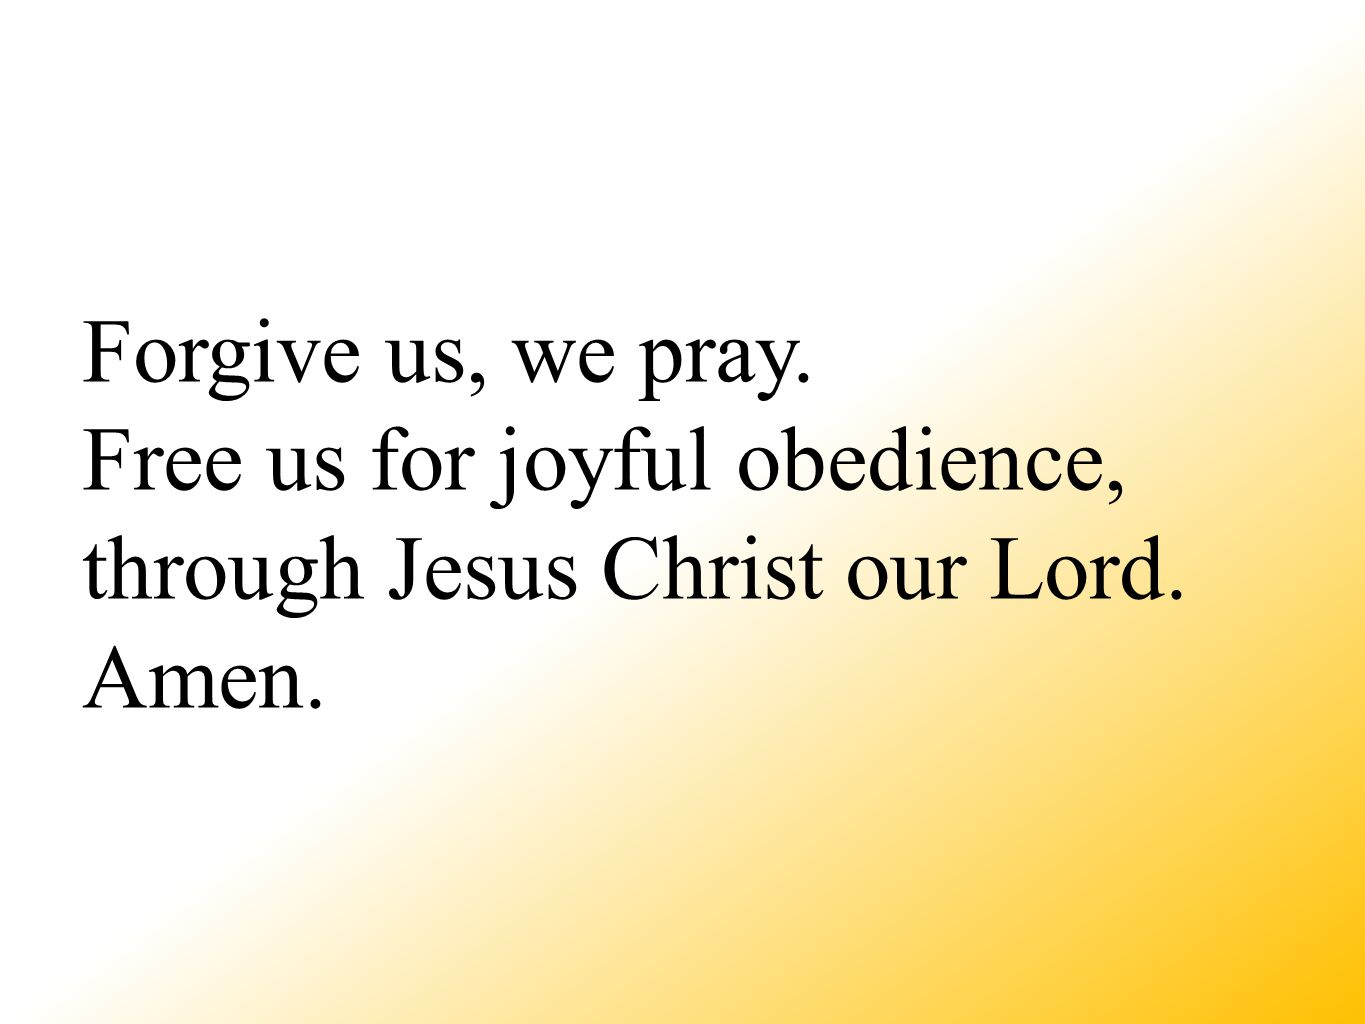 Forgive us, we pray. Free us for joyful obedience, through Jesus Christ our Lord. Amen.